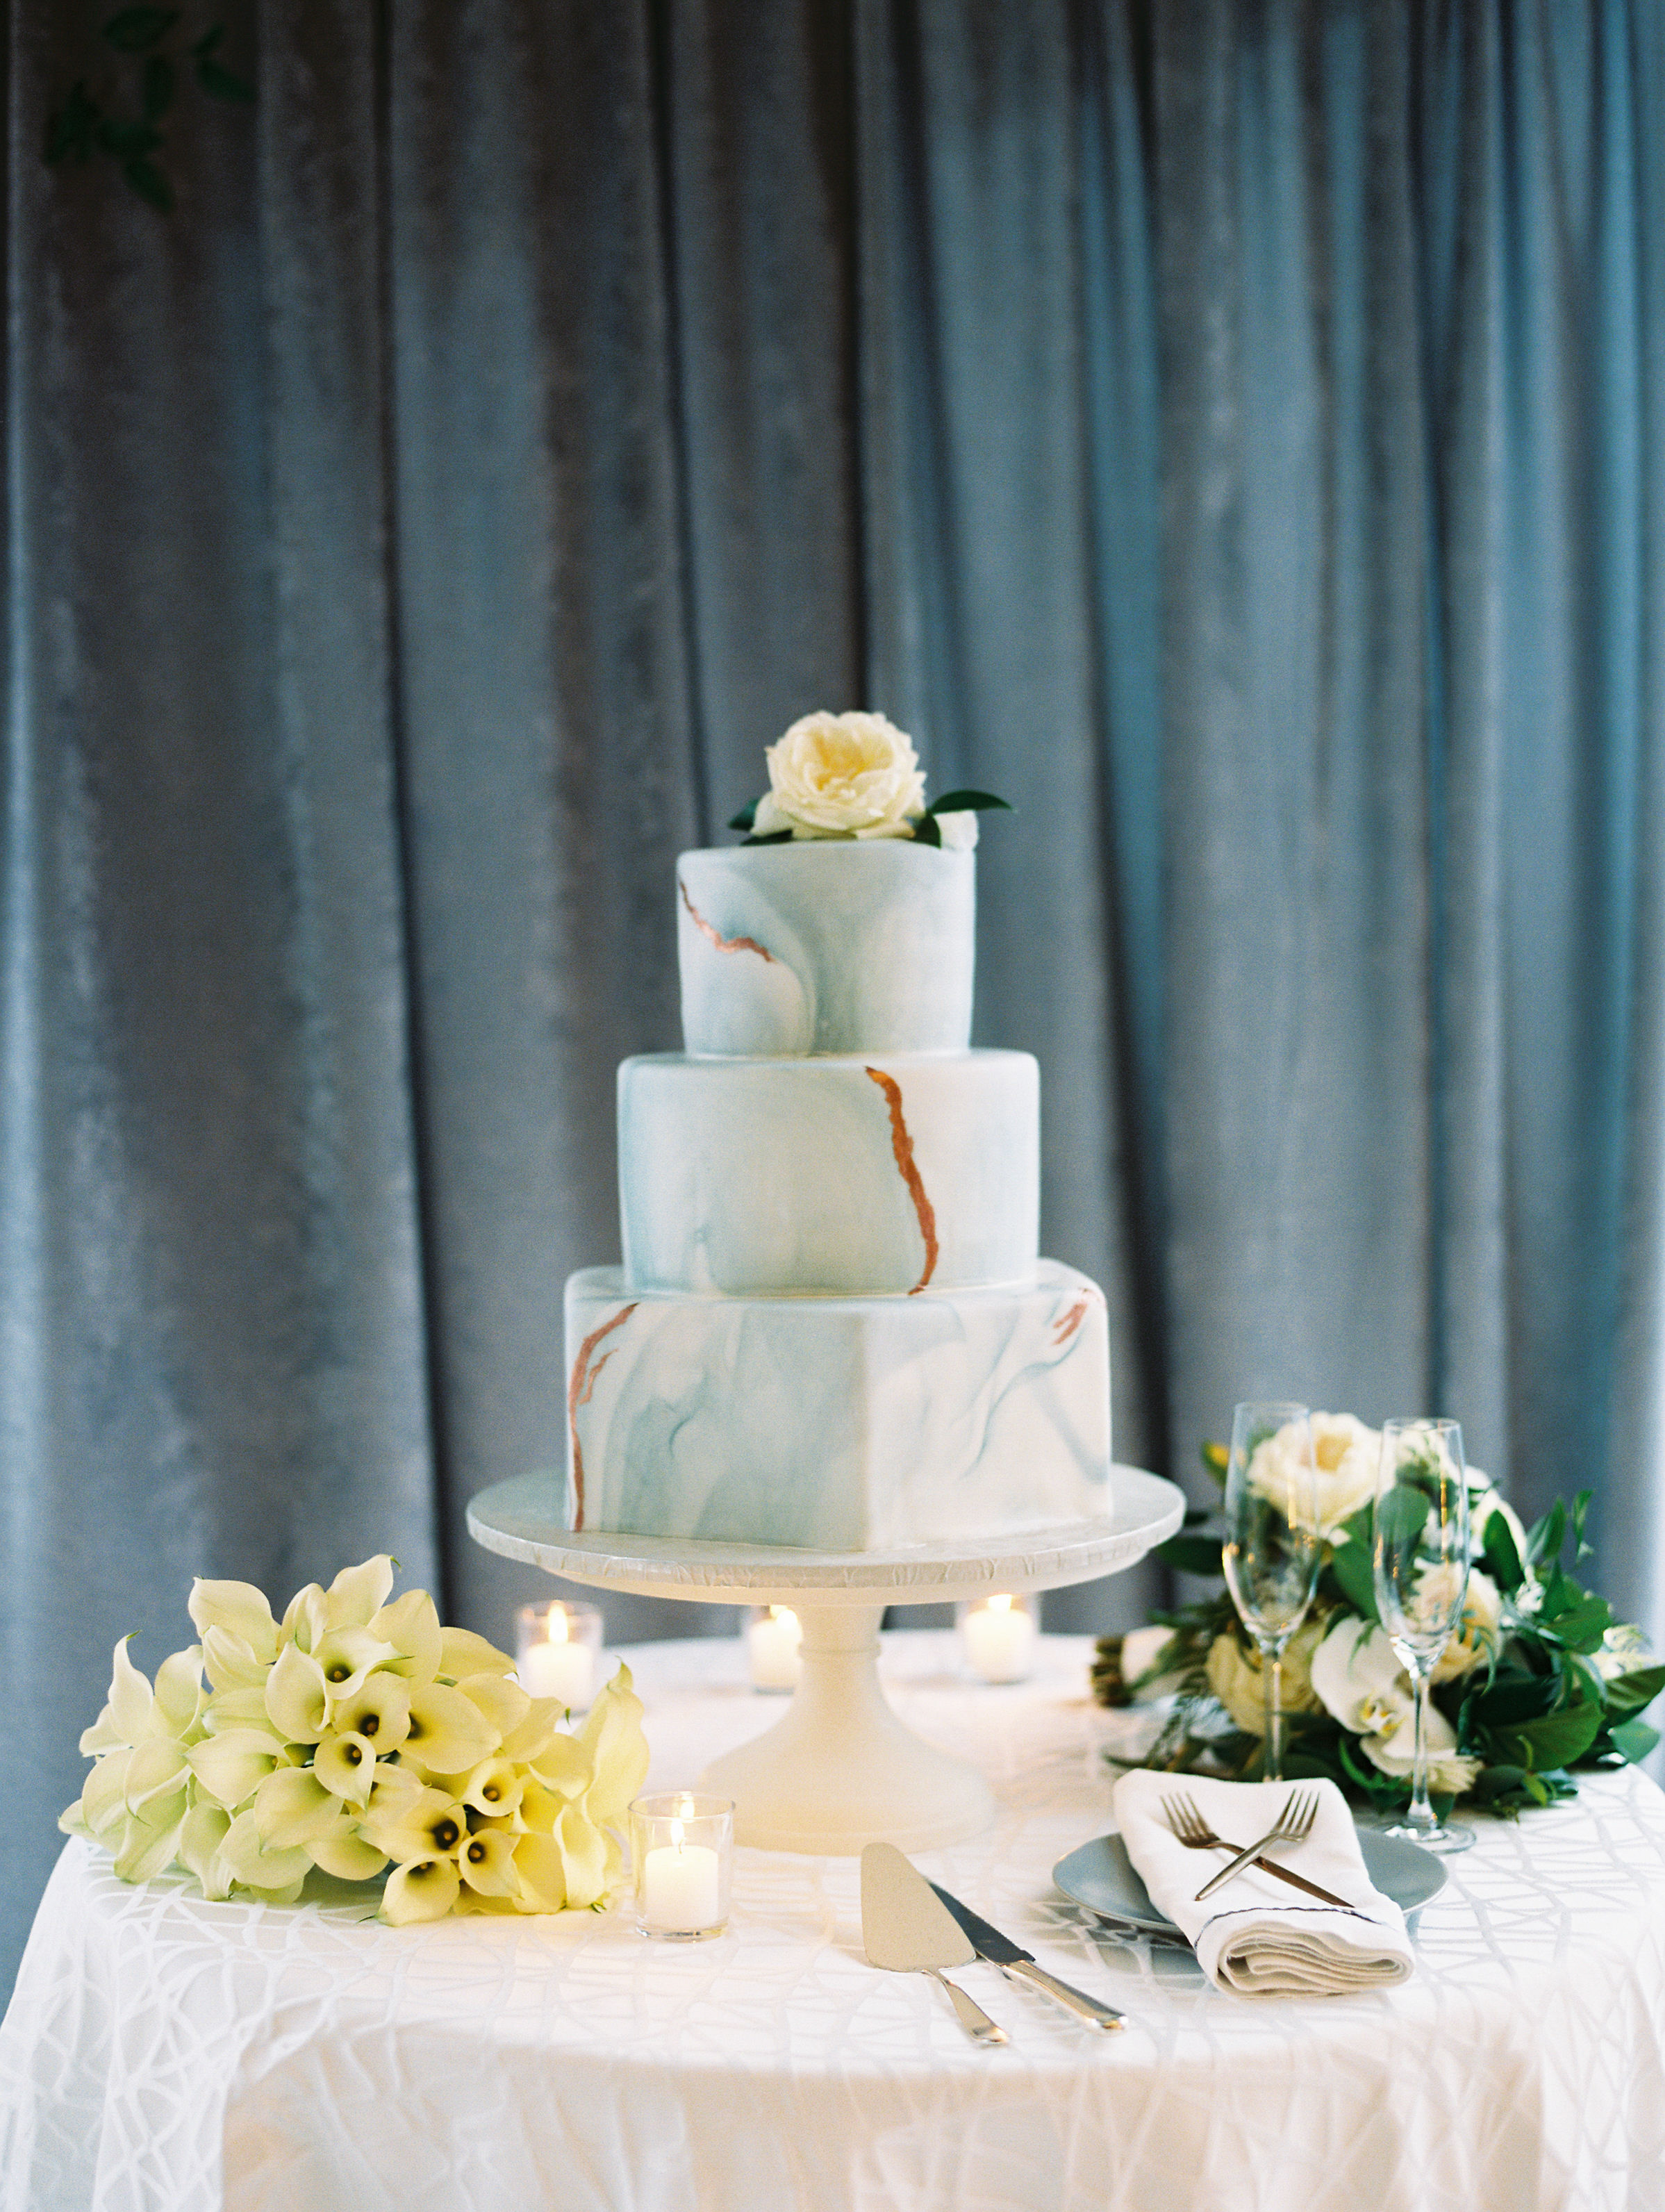 melissa justen wedding cake marble decoration on table